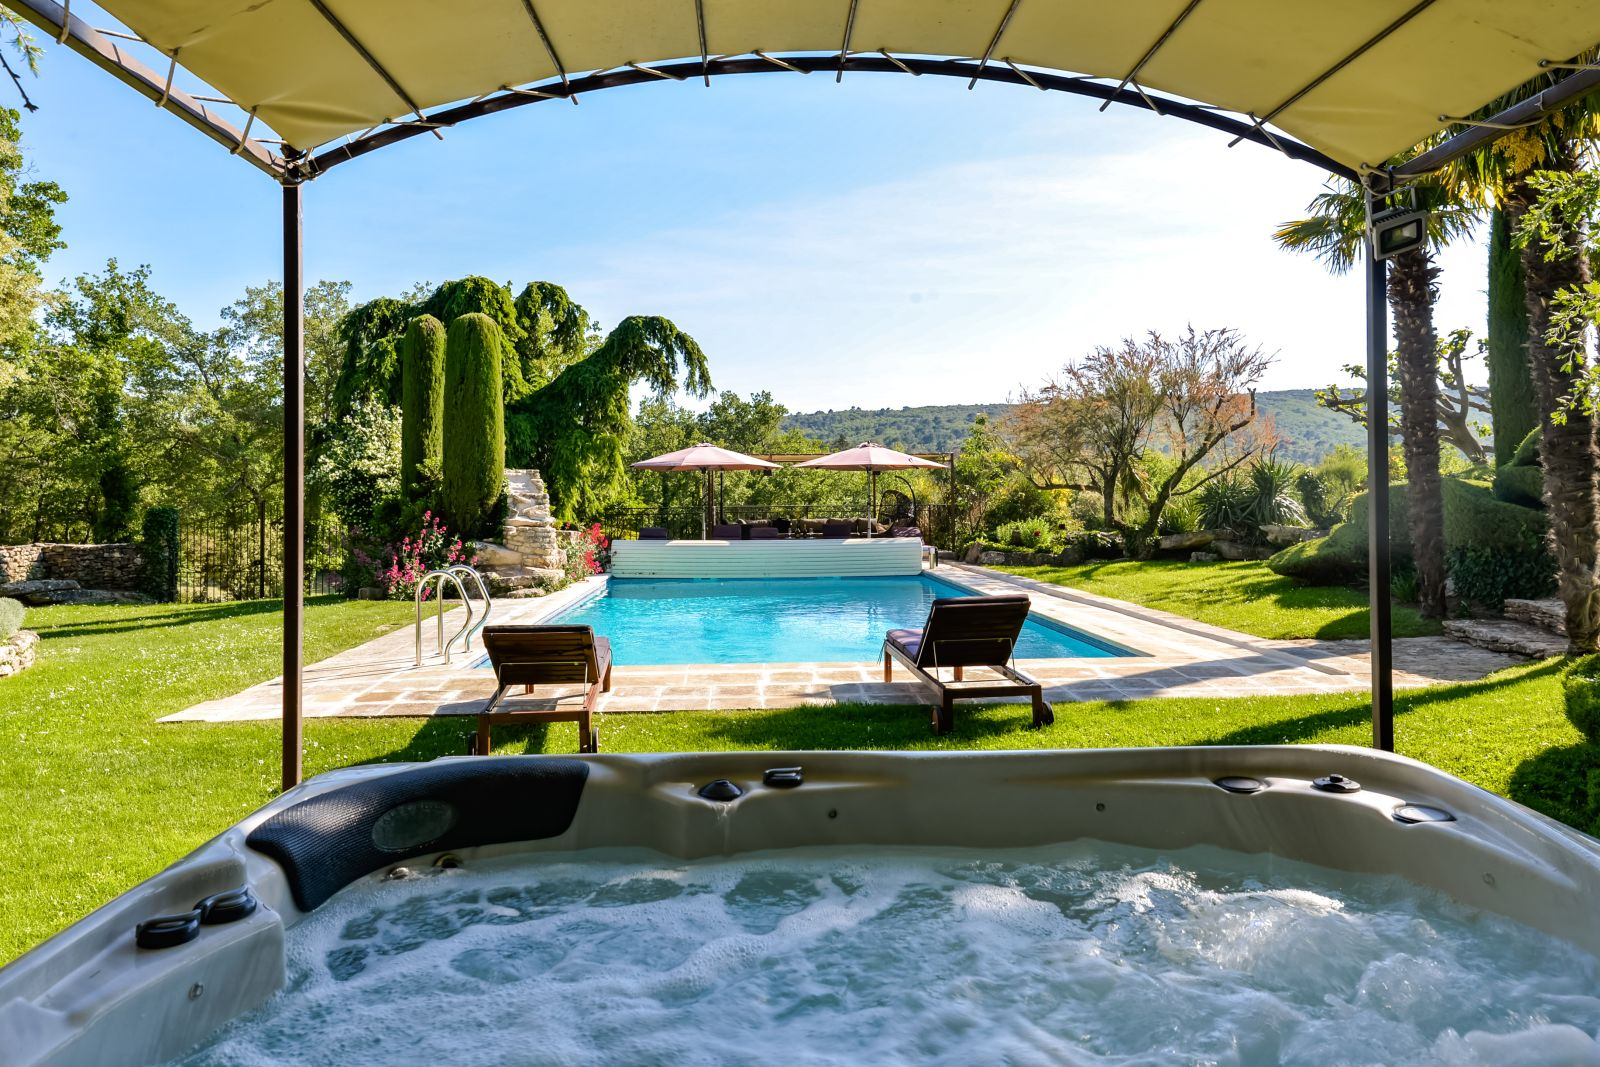 Provence Luberon luxury villa rentals with heated private pool and[....]